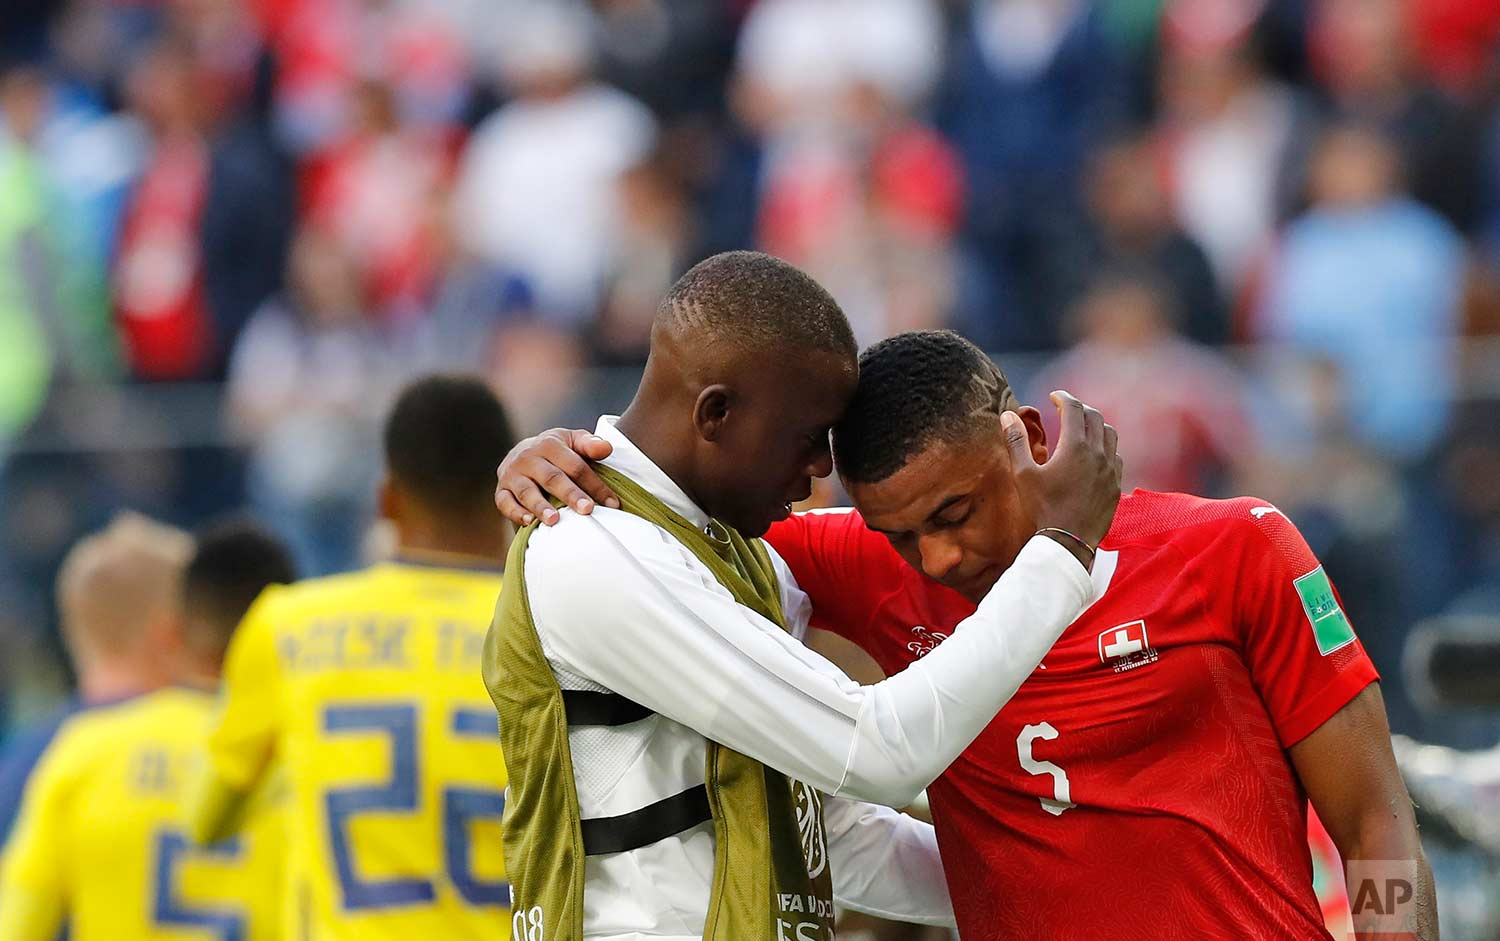 Switzerland's Manuel Akanji, right, reacts at the end of the match after Sweden defeated Switzerland during the round of 16 match between Switzerland and Sweden at the 2018 soccer World Cup in the St. Petersburg Stadium, in St. Petersburg, Russia, Tuesday, July 3, 2018. (AP Photo/Efrem Lukatsky)